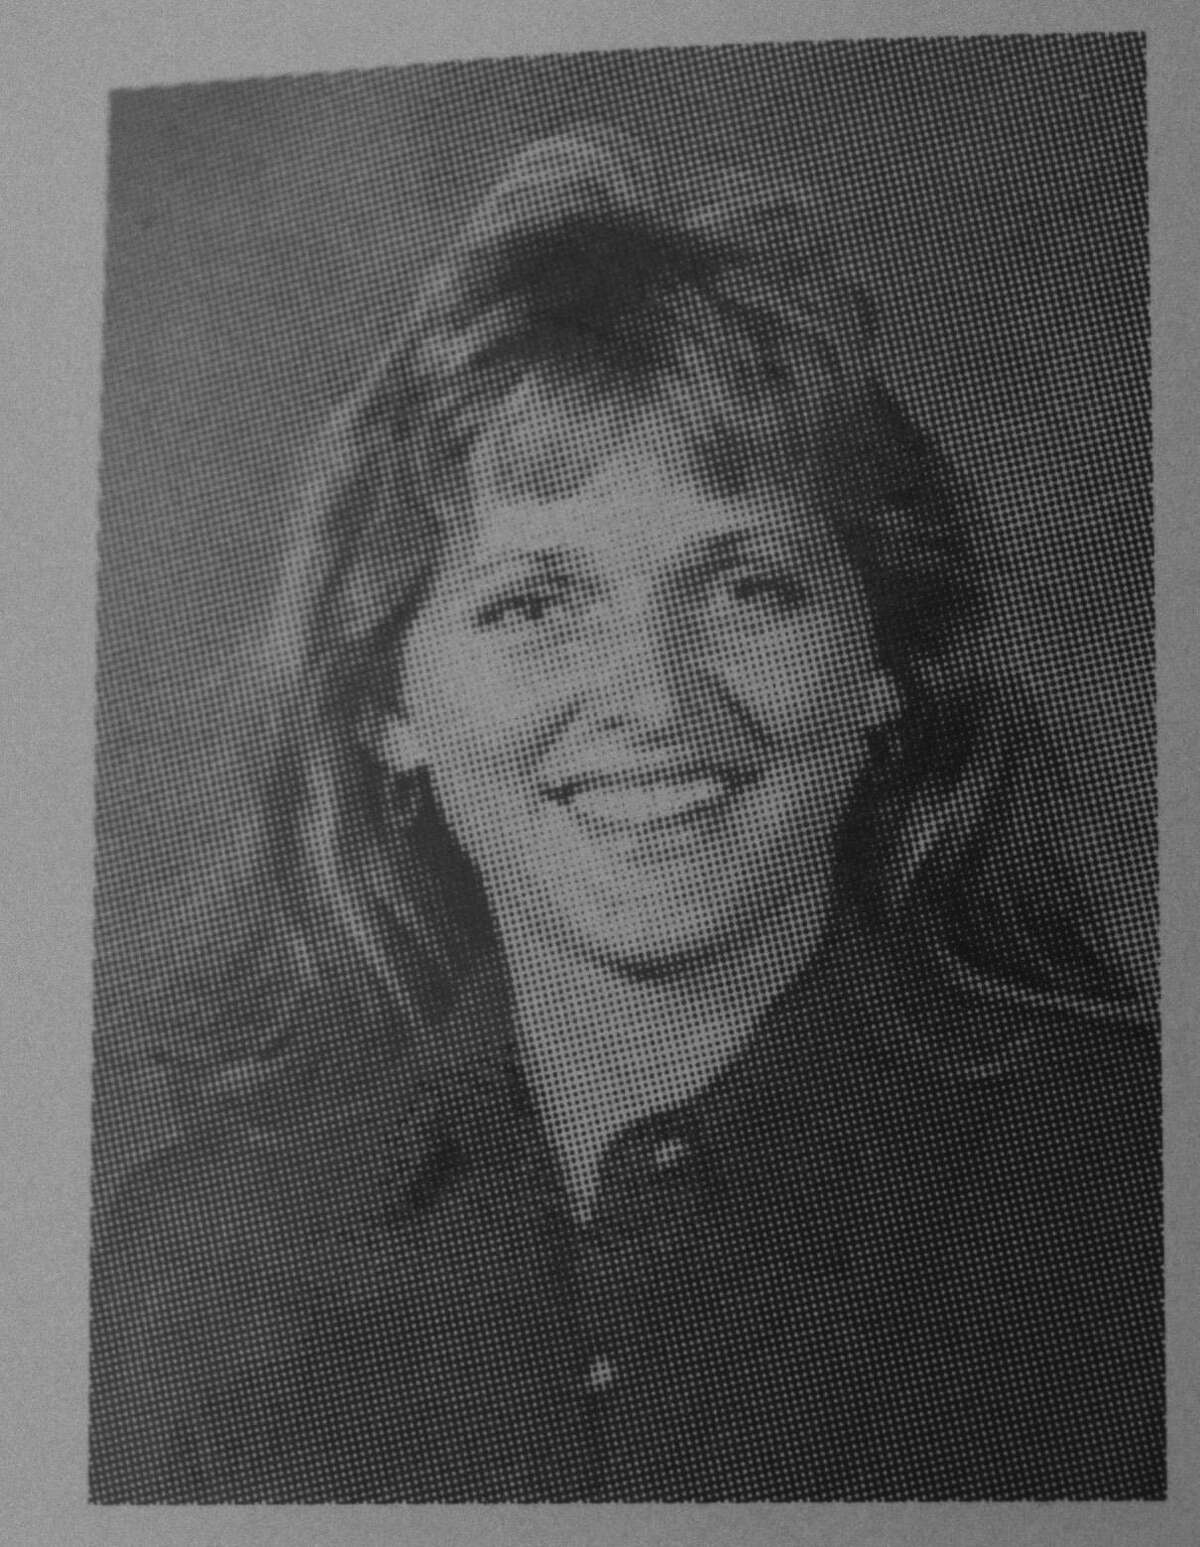 Copy yearbook photo of Belinda Temple, 30, teacher at Katy High School who was found murdered in her home Monday. Temple, pregnant was found shot to death. HOUCHRON CAPTION (01/13/1999): Temple. HOUCHRON CAPTION (01/16/1999): B. Temple